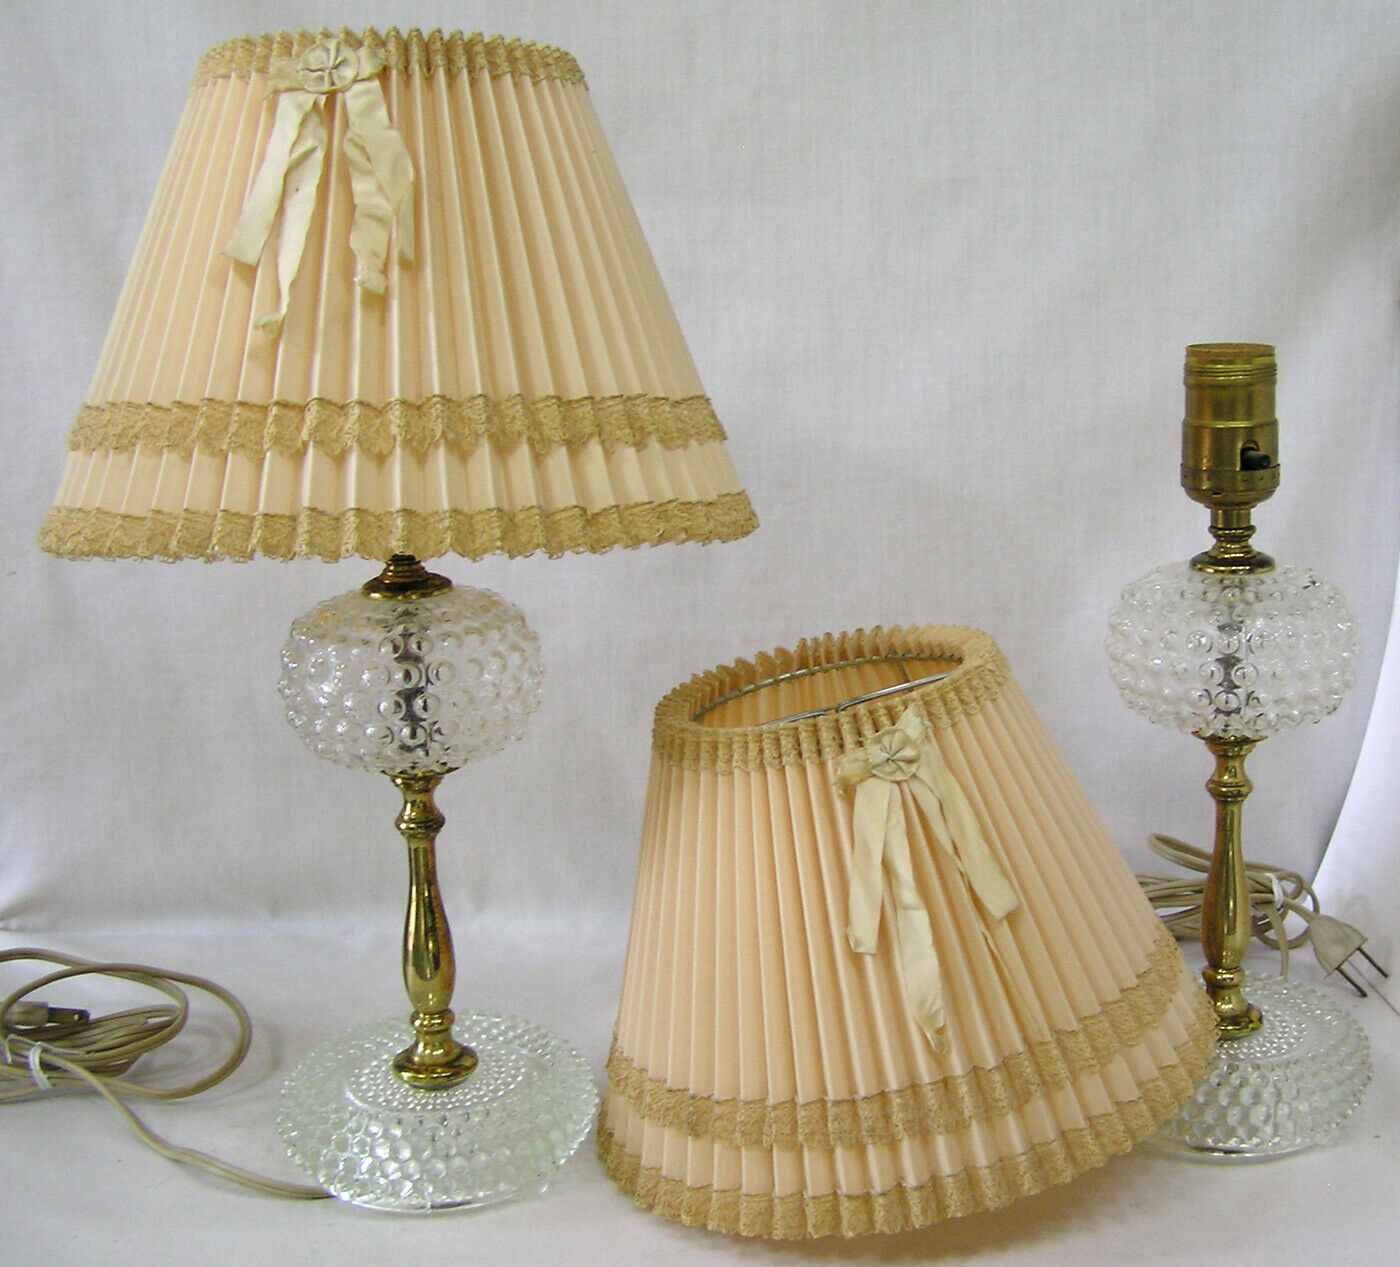 Vtg Pair Boudoir Bedroom Lamps Hobnail Glass W Pleated Lacy Shades 1930s Ebay Bedroom Lamps Hobnail Glass Lamp